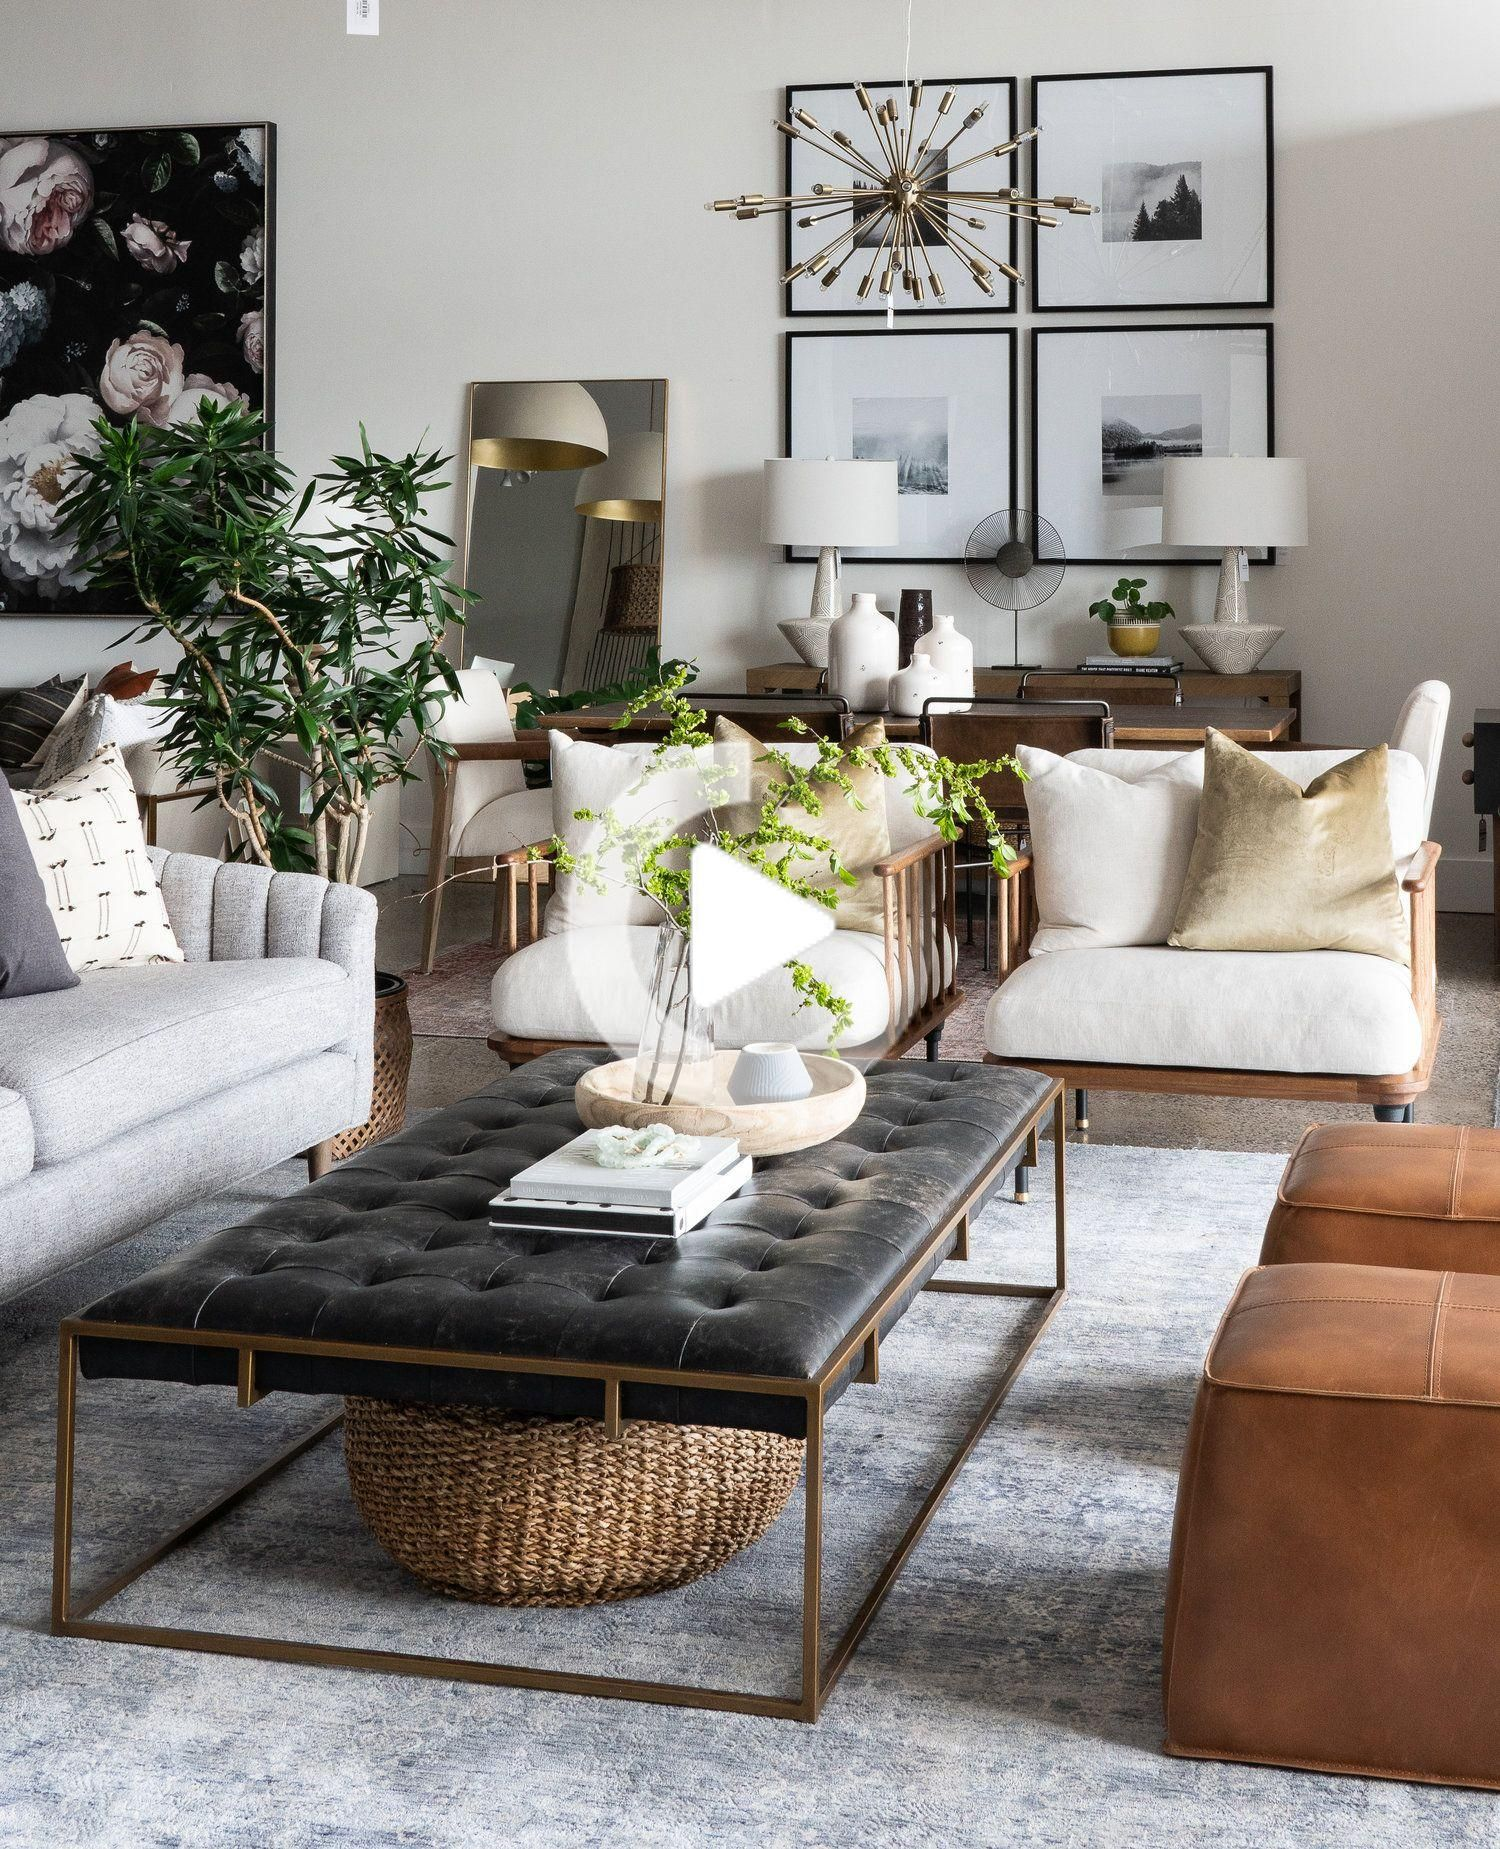 Our Top Five Tips For Styling A Coffee Table Leclair Decor In 2020 Living Room Coffee Table Contemporary Living Room Design Room Decor